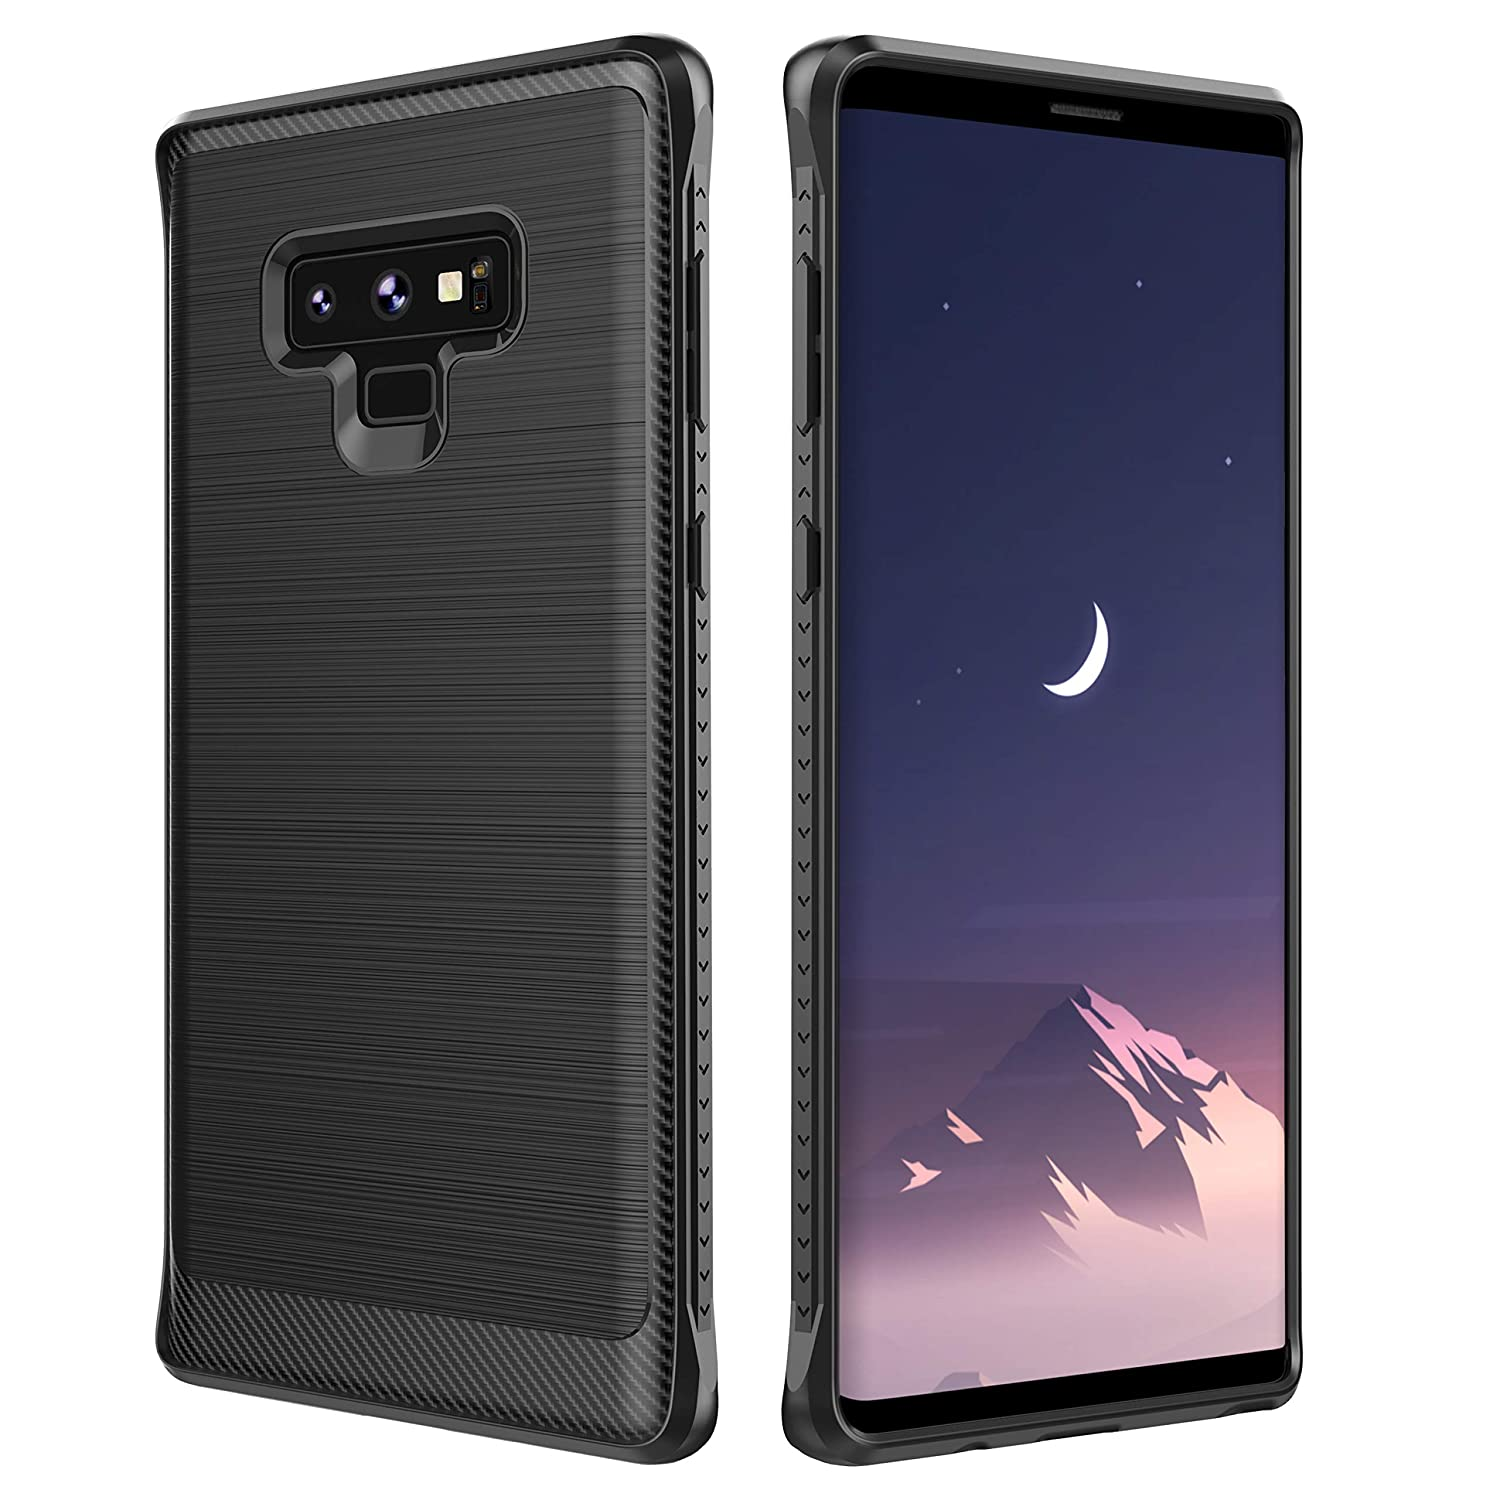 official photos d47d7 fbe27 Note 9 Case, Amokc Note 9 Protective Case Brushed Carbon Fiber Phone Case  Soft TPU Full Body Protection Shockproof Case Cover for Samsung Galaxy Note  ...